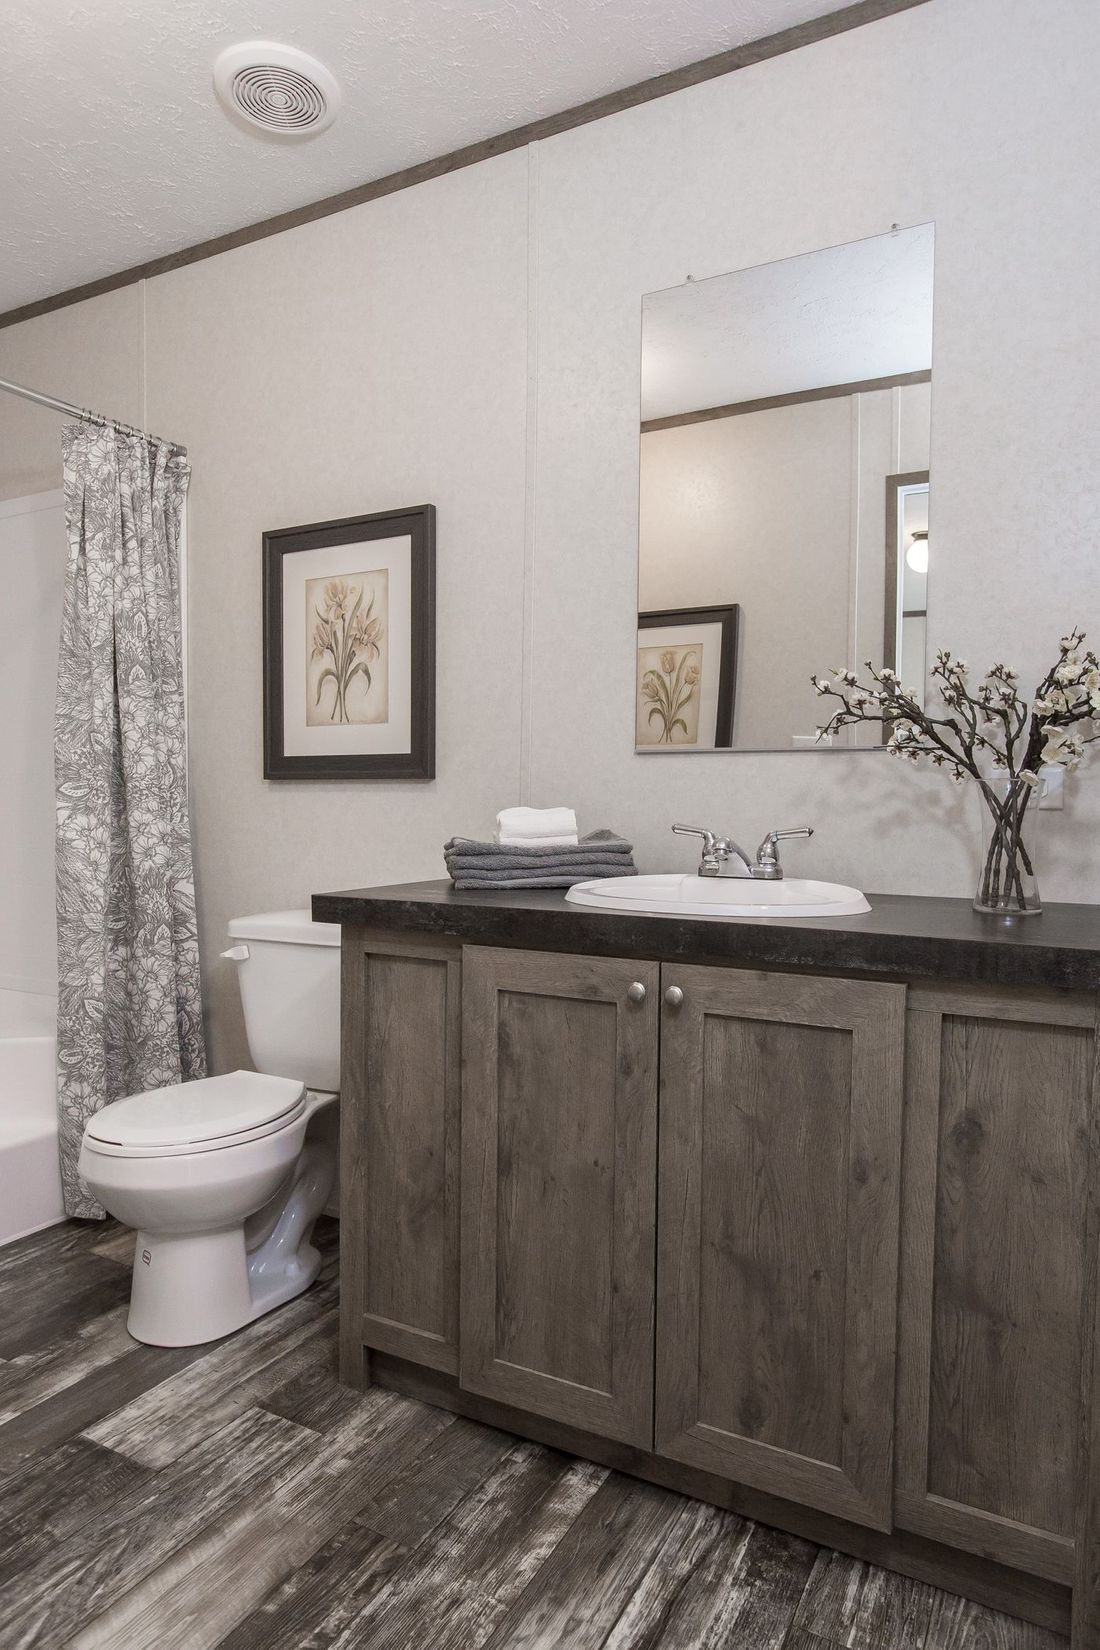 The THE BREEZE Master Bathroom. This Manufactured Mobile Home features 3 bedrooms and 2 baths.